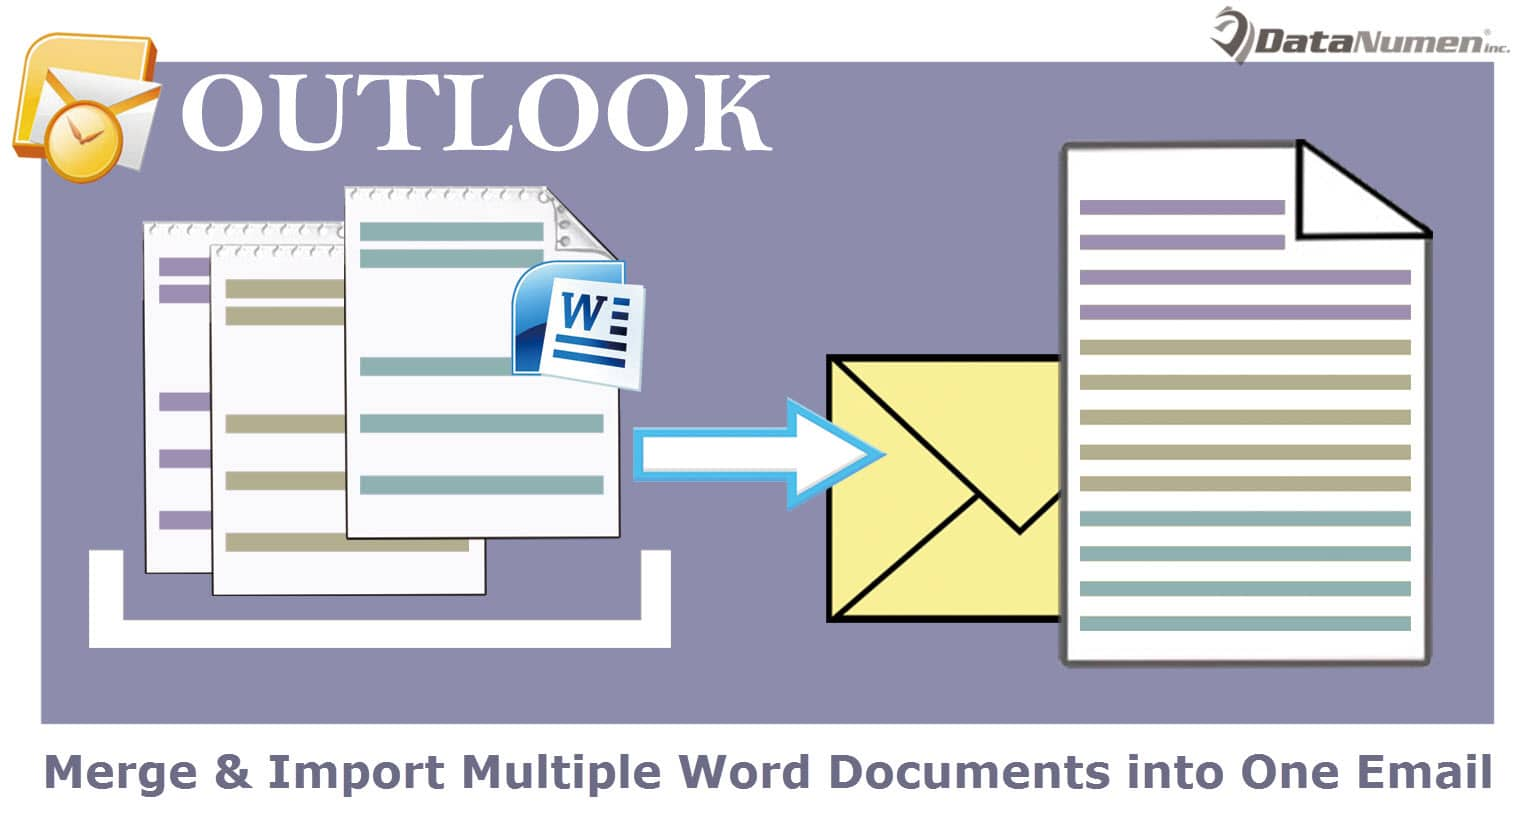 Quickly Merge & Import Multiple Word Documents into One Outlook Email